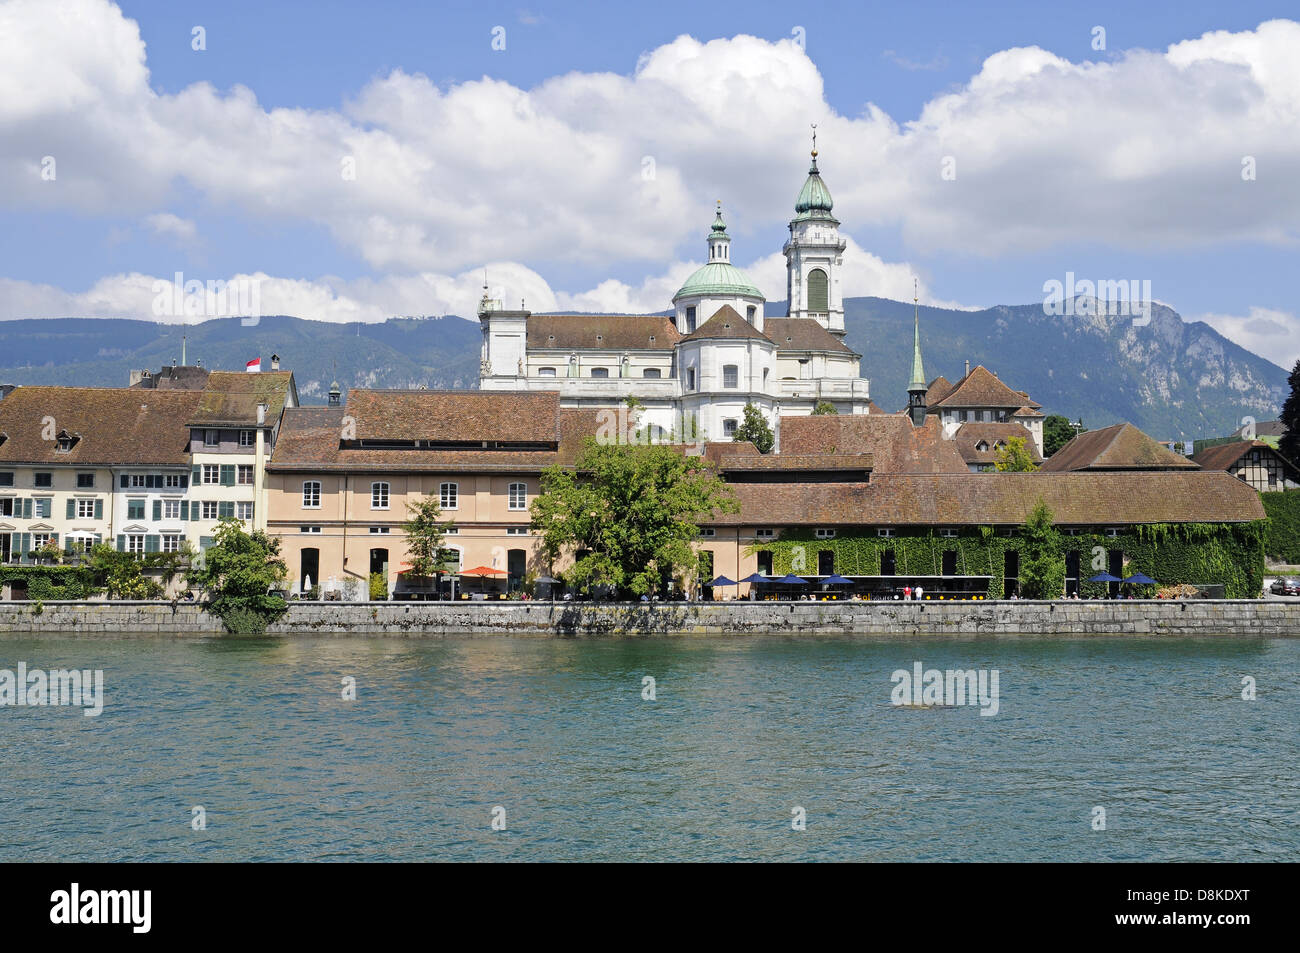 River Aare - Stock Image